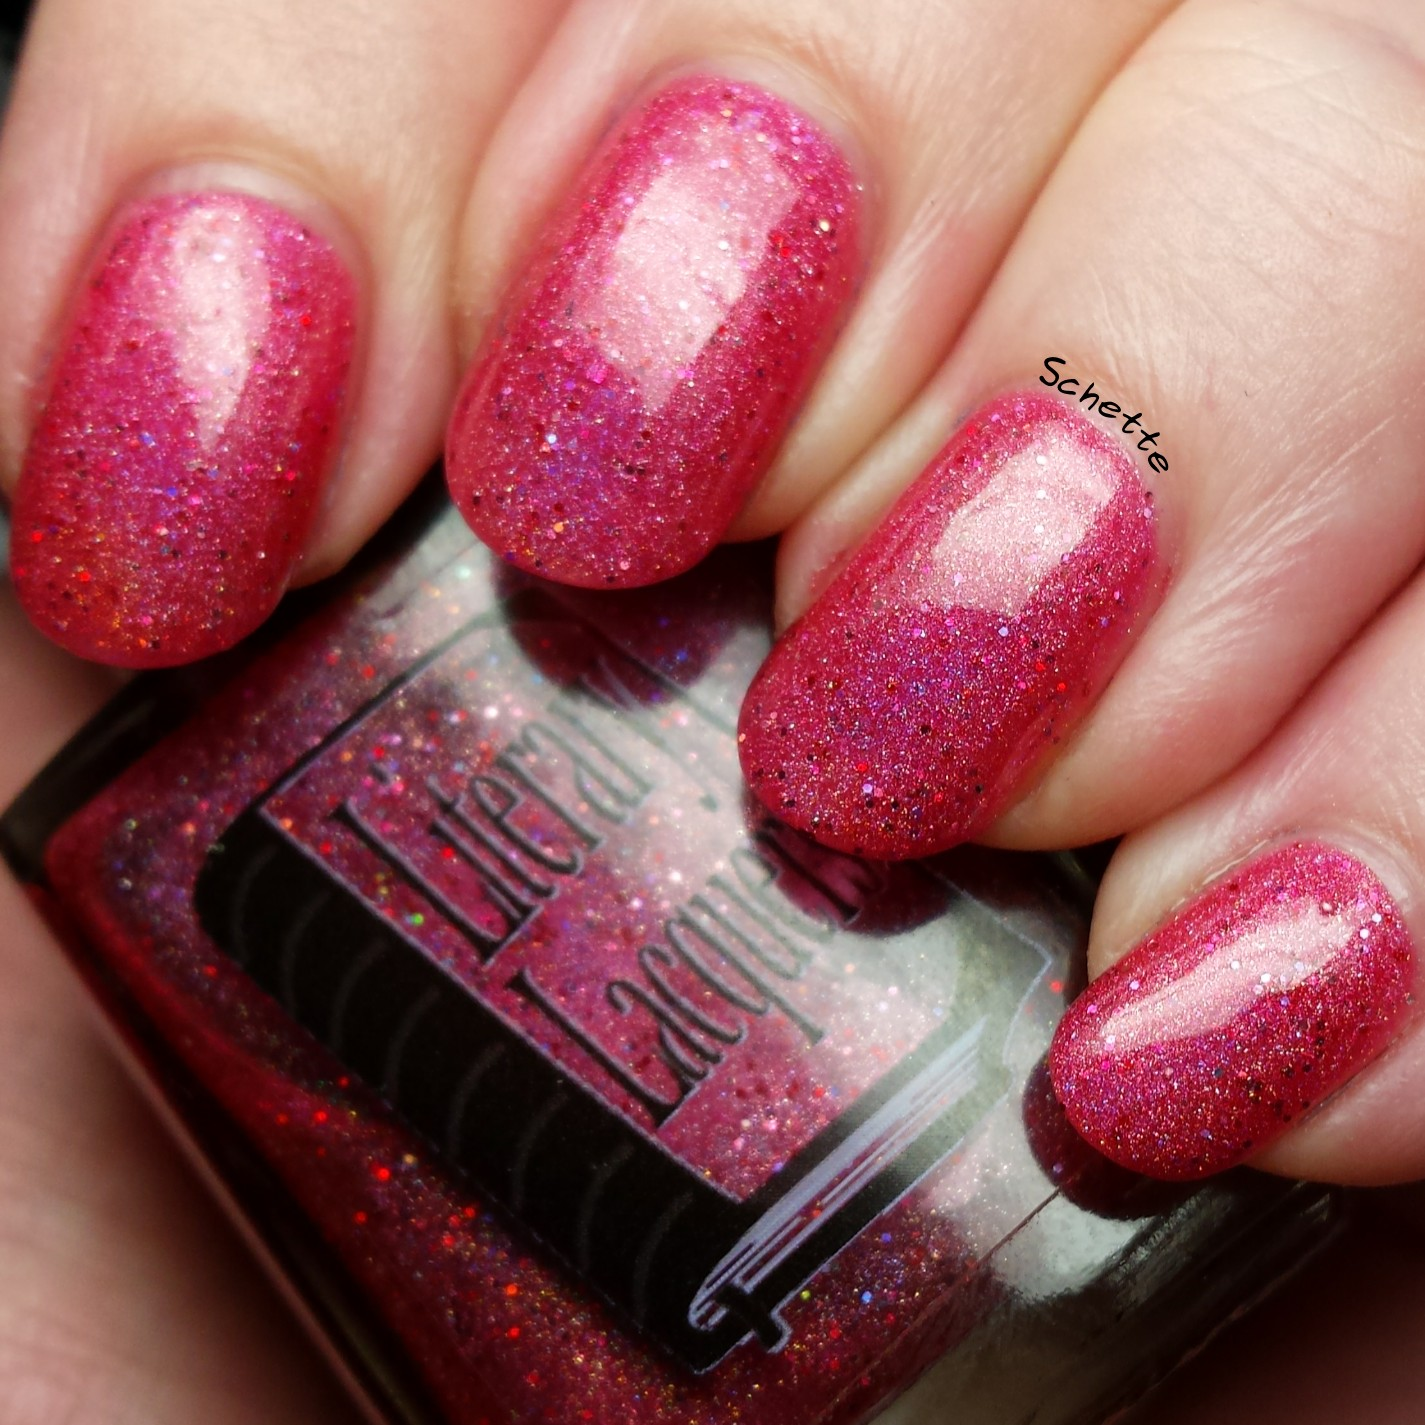 Literary Lacquers - Raspberry Cordial